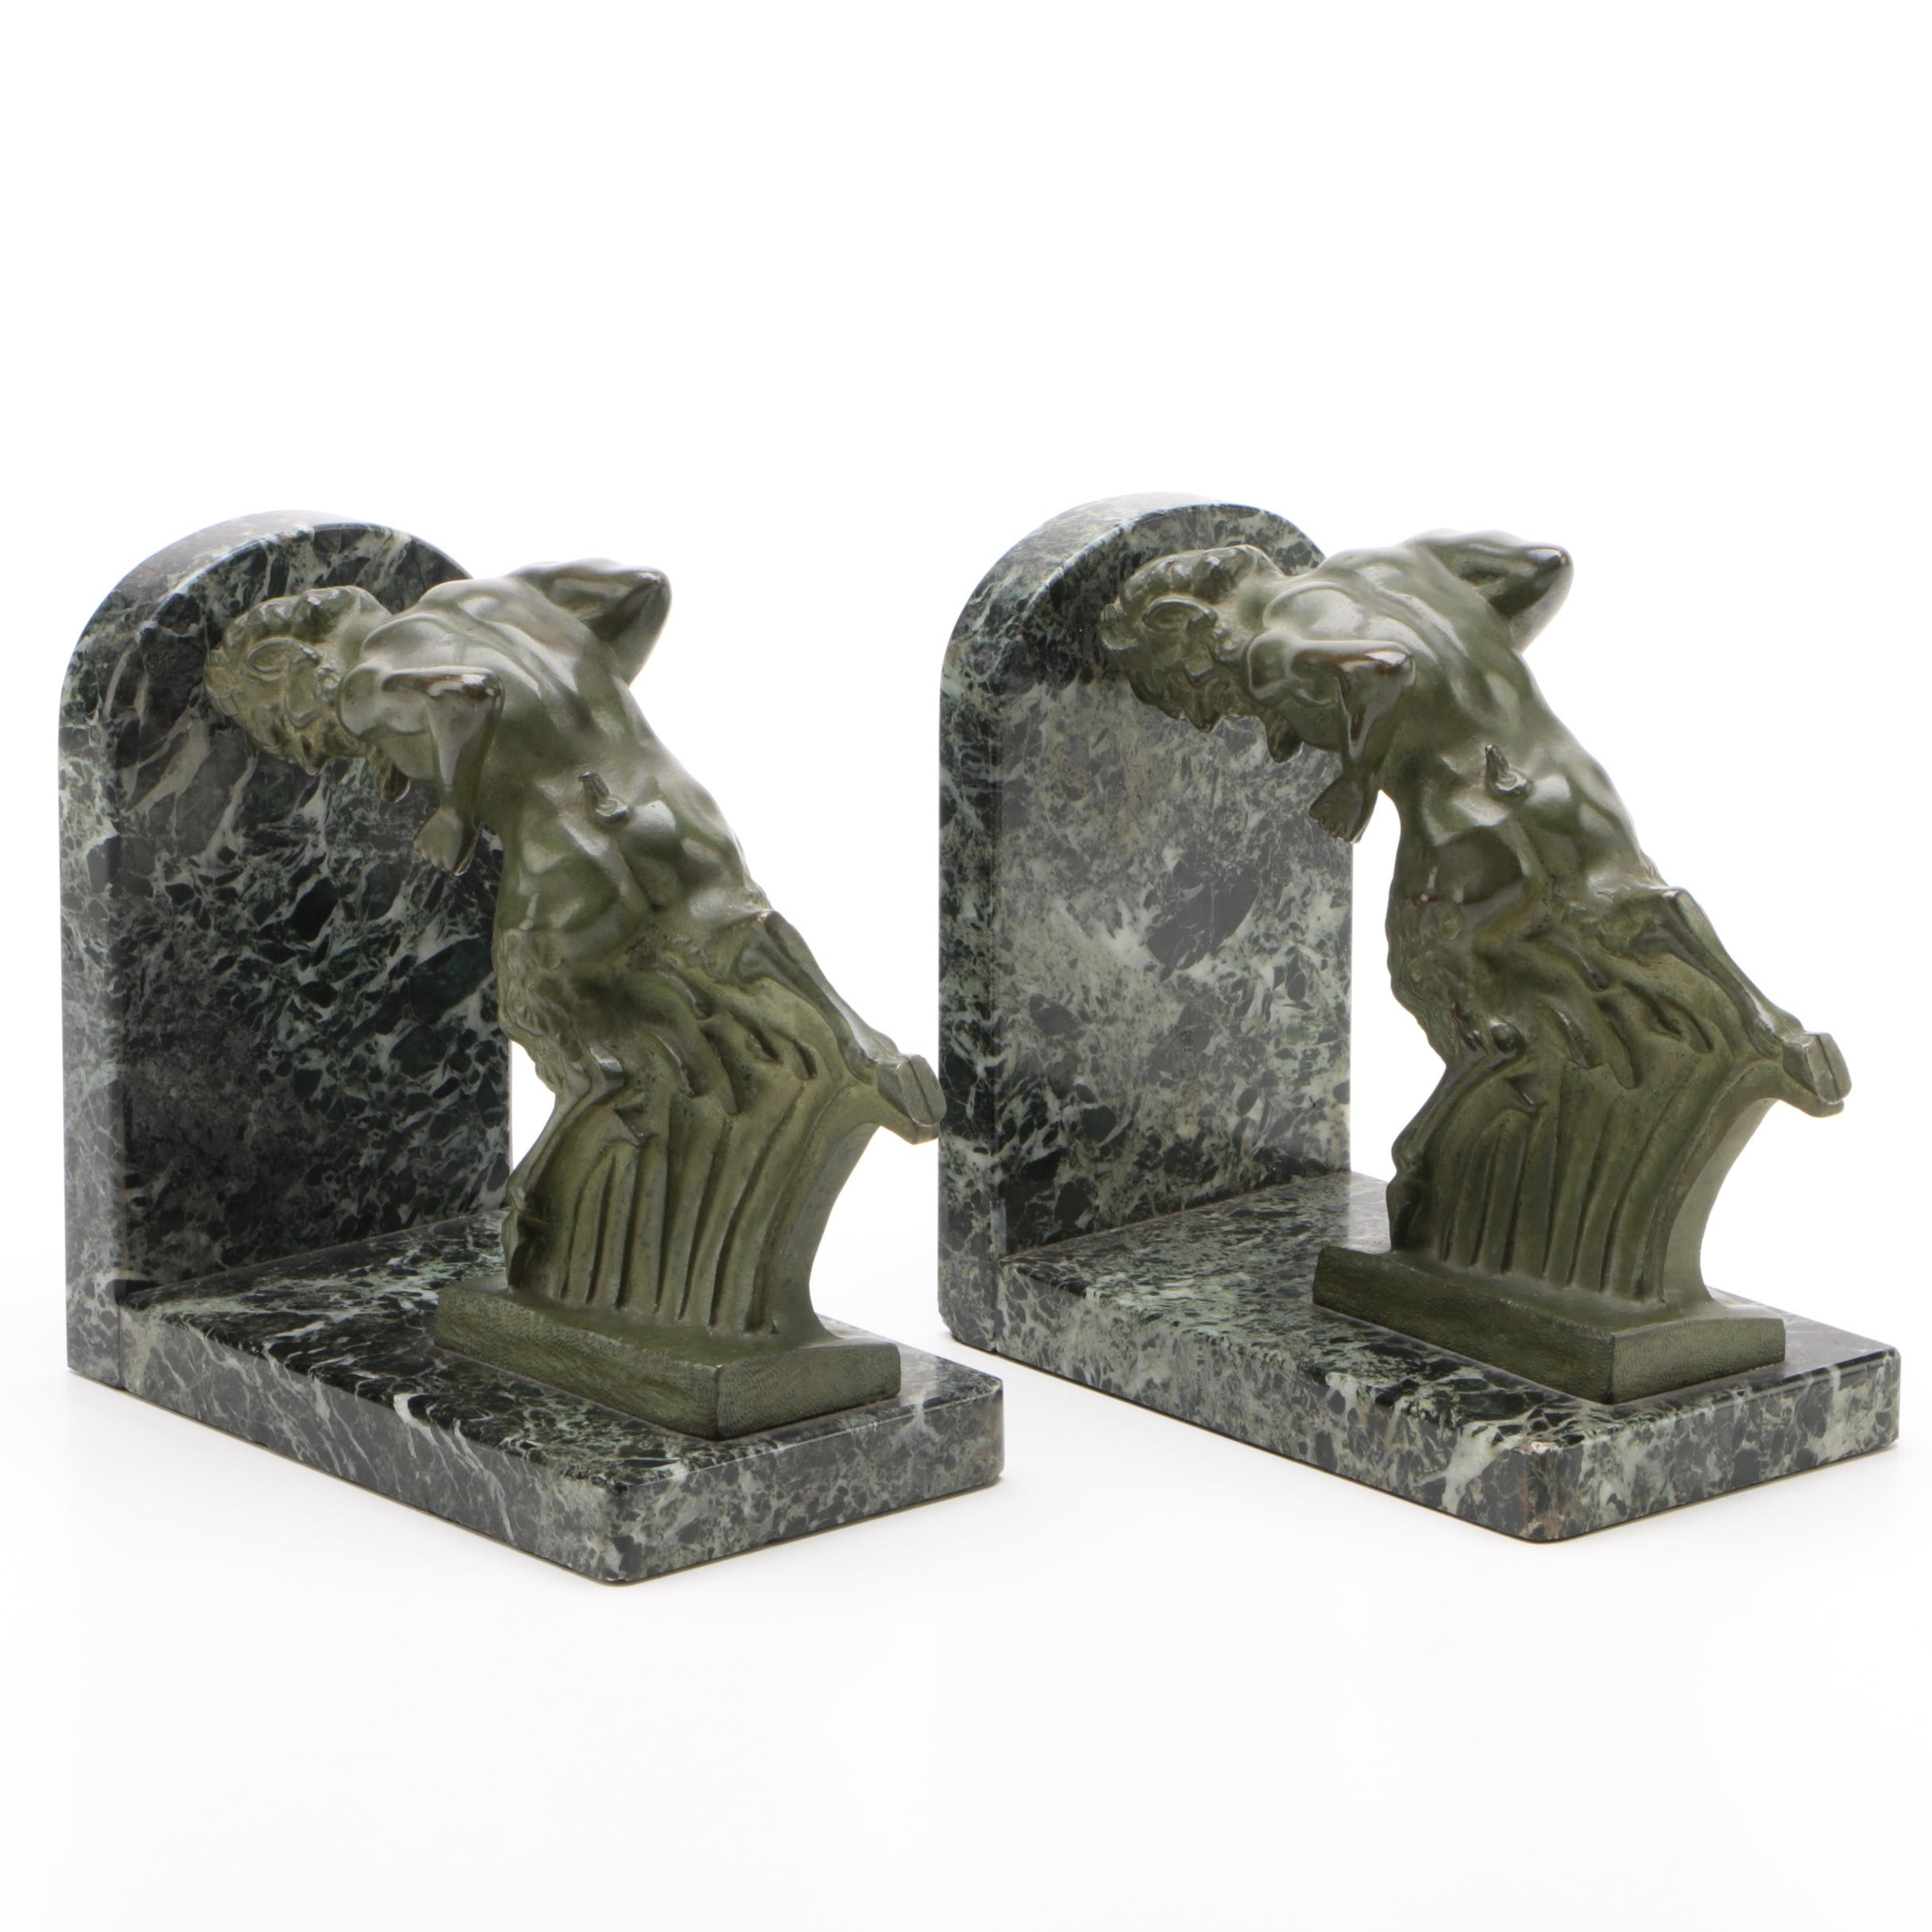 Art Deco Bronze and Marble Satyr Bookends by Irénée Rochard, Circa 1930s